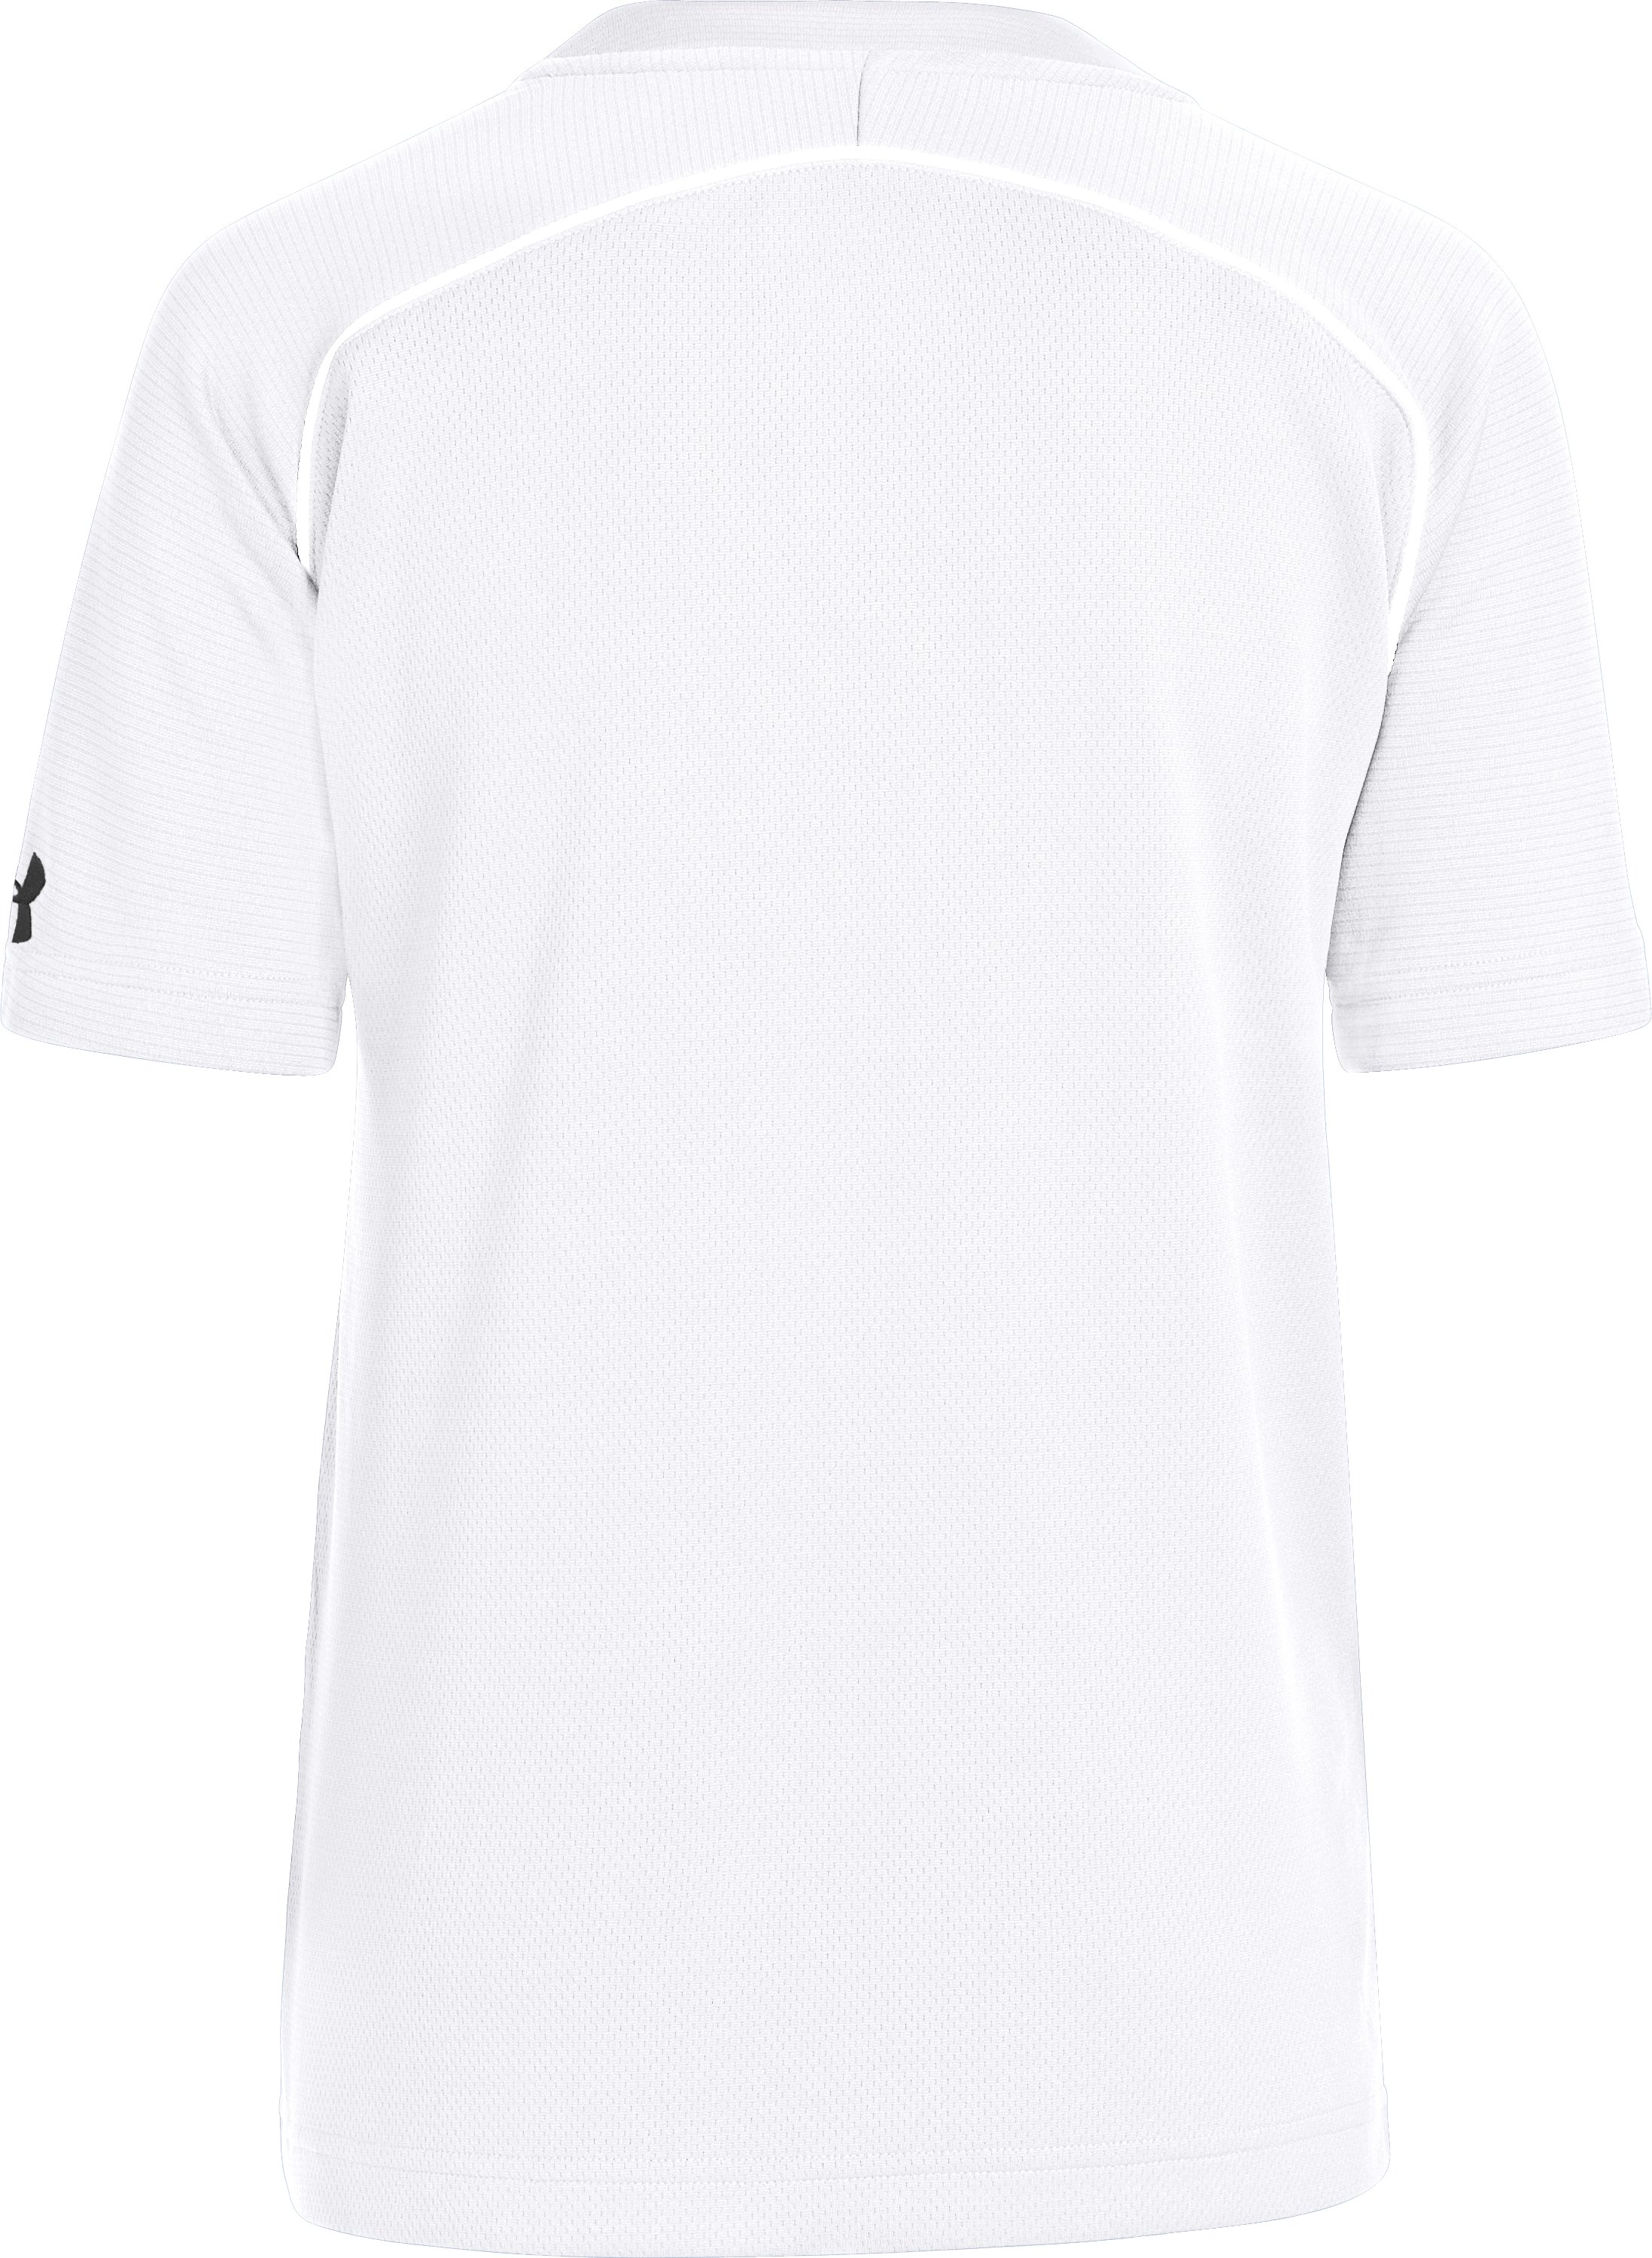 Boys' UA Landsdown II Baseball Jersey, White